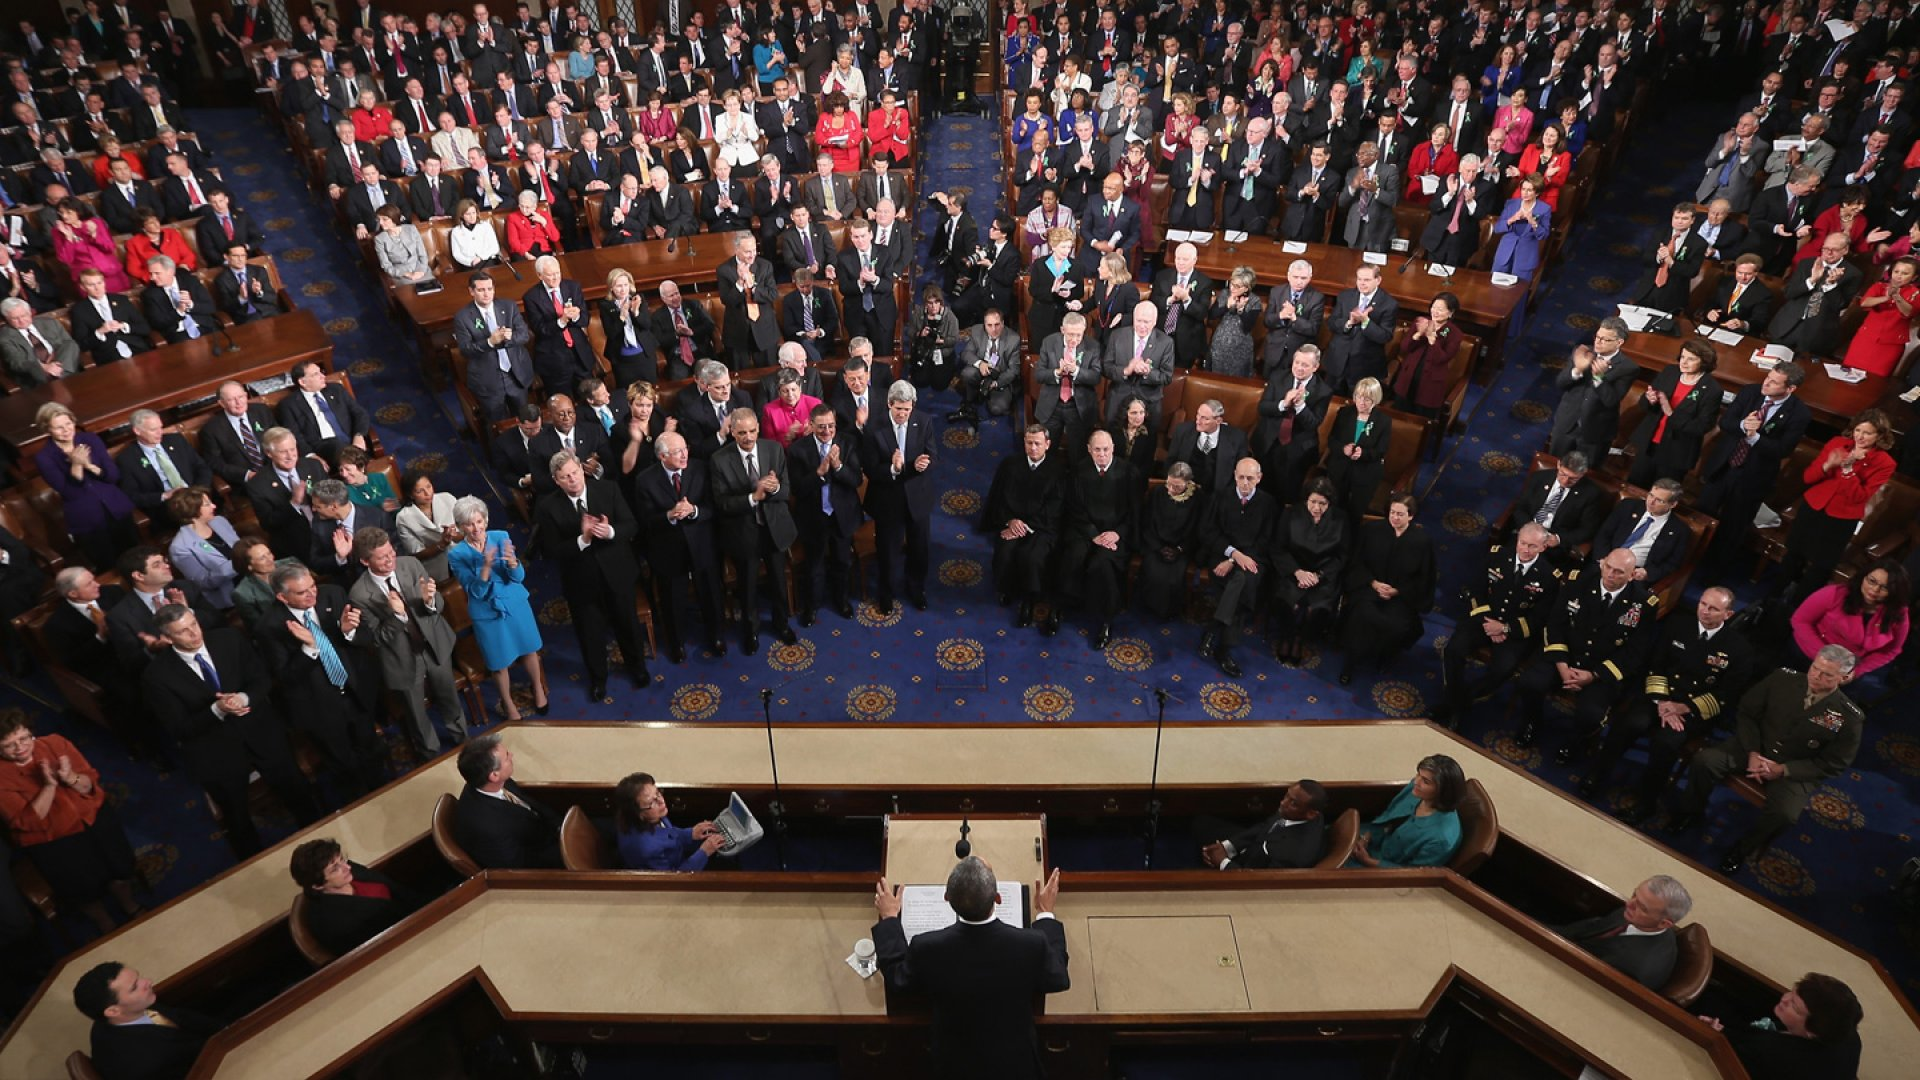 President Barack Obama delivers his State of the Union address before a joint session of Congress at the U.S. Capitol, February 12, 2013, in Washington, D,C.